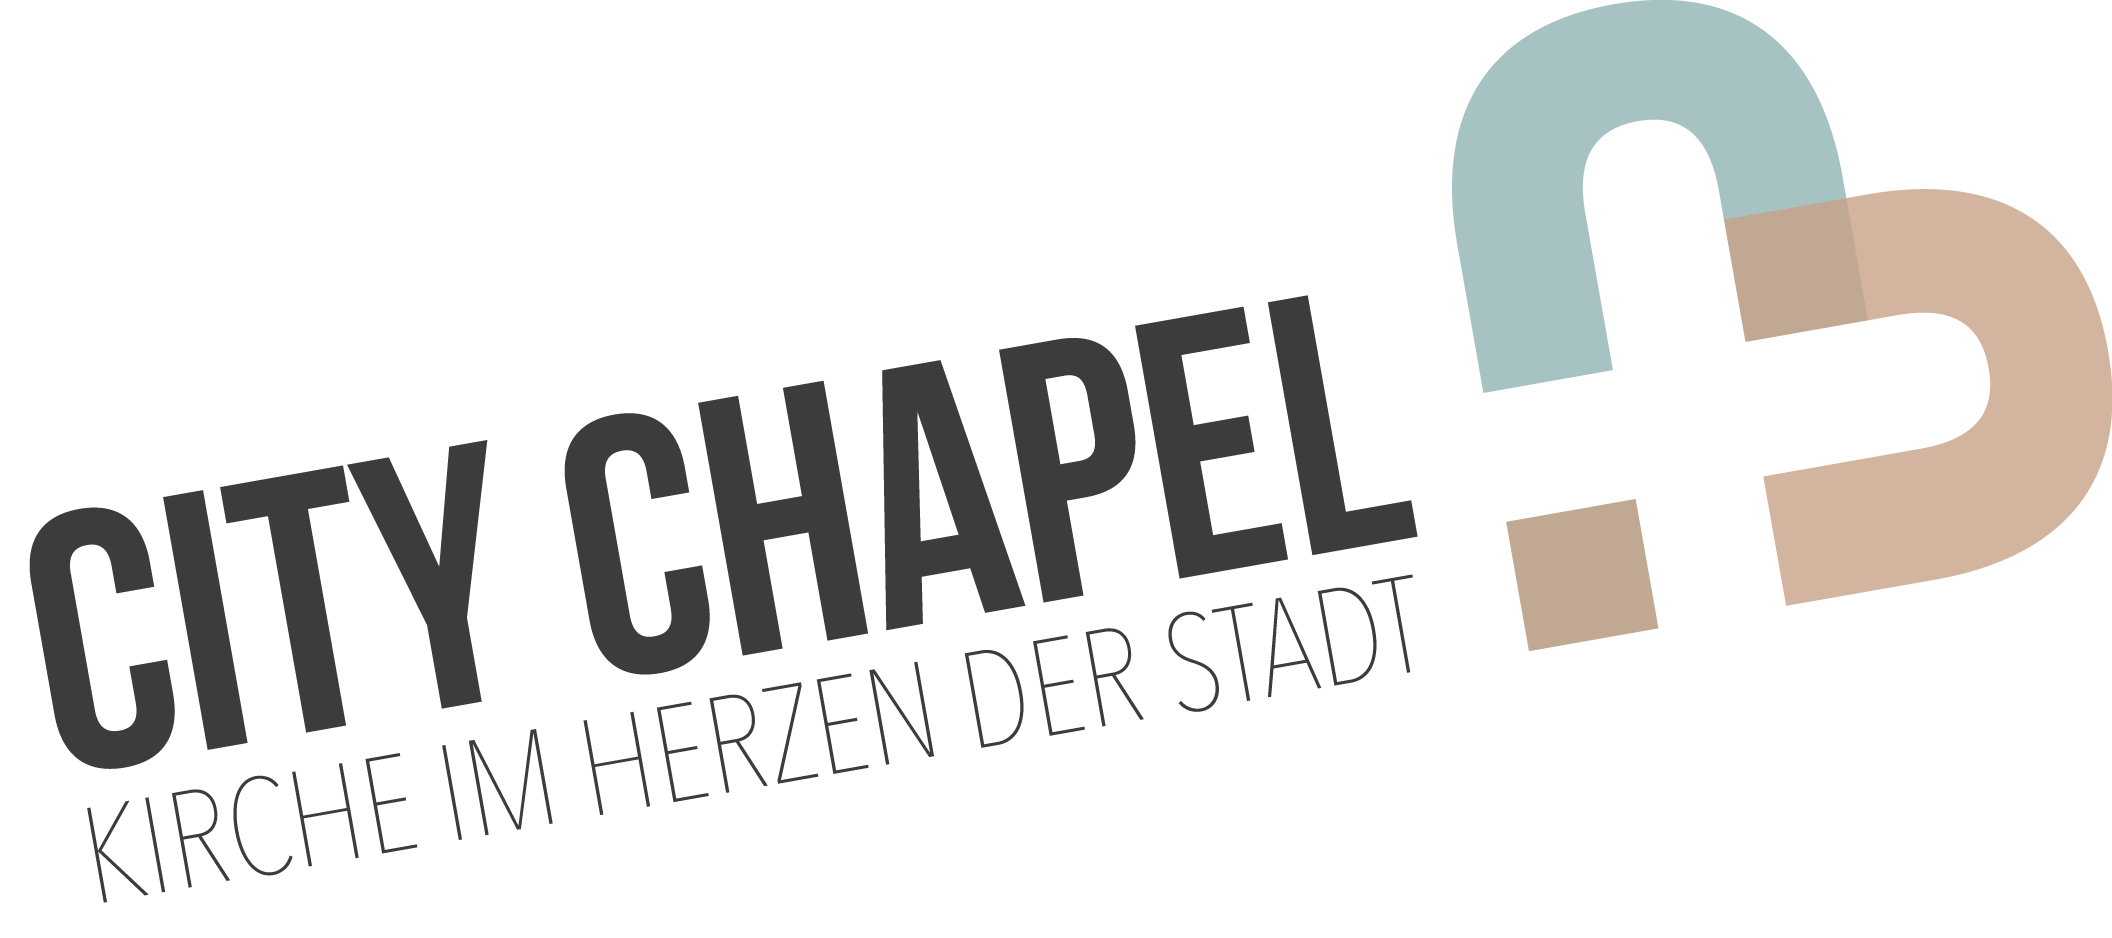 City Chapel Stuttgart